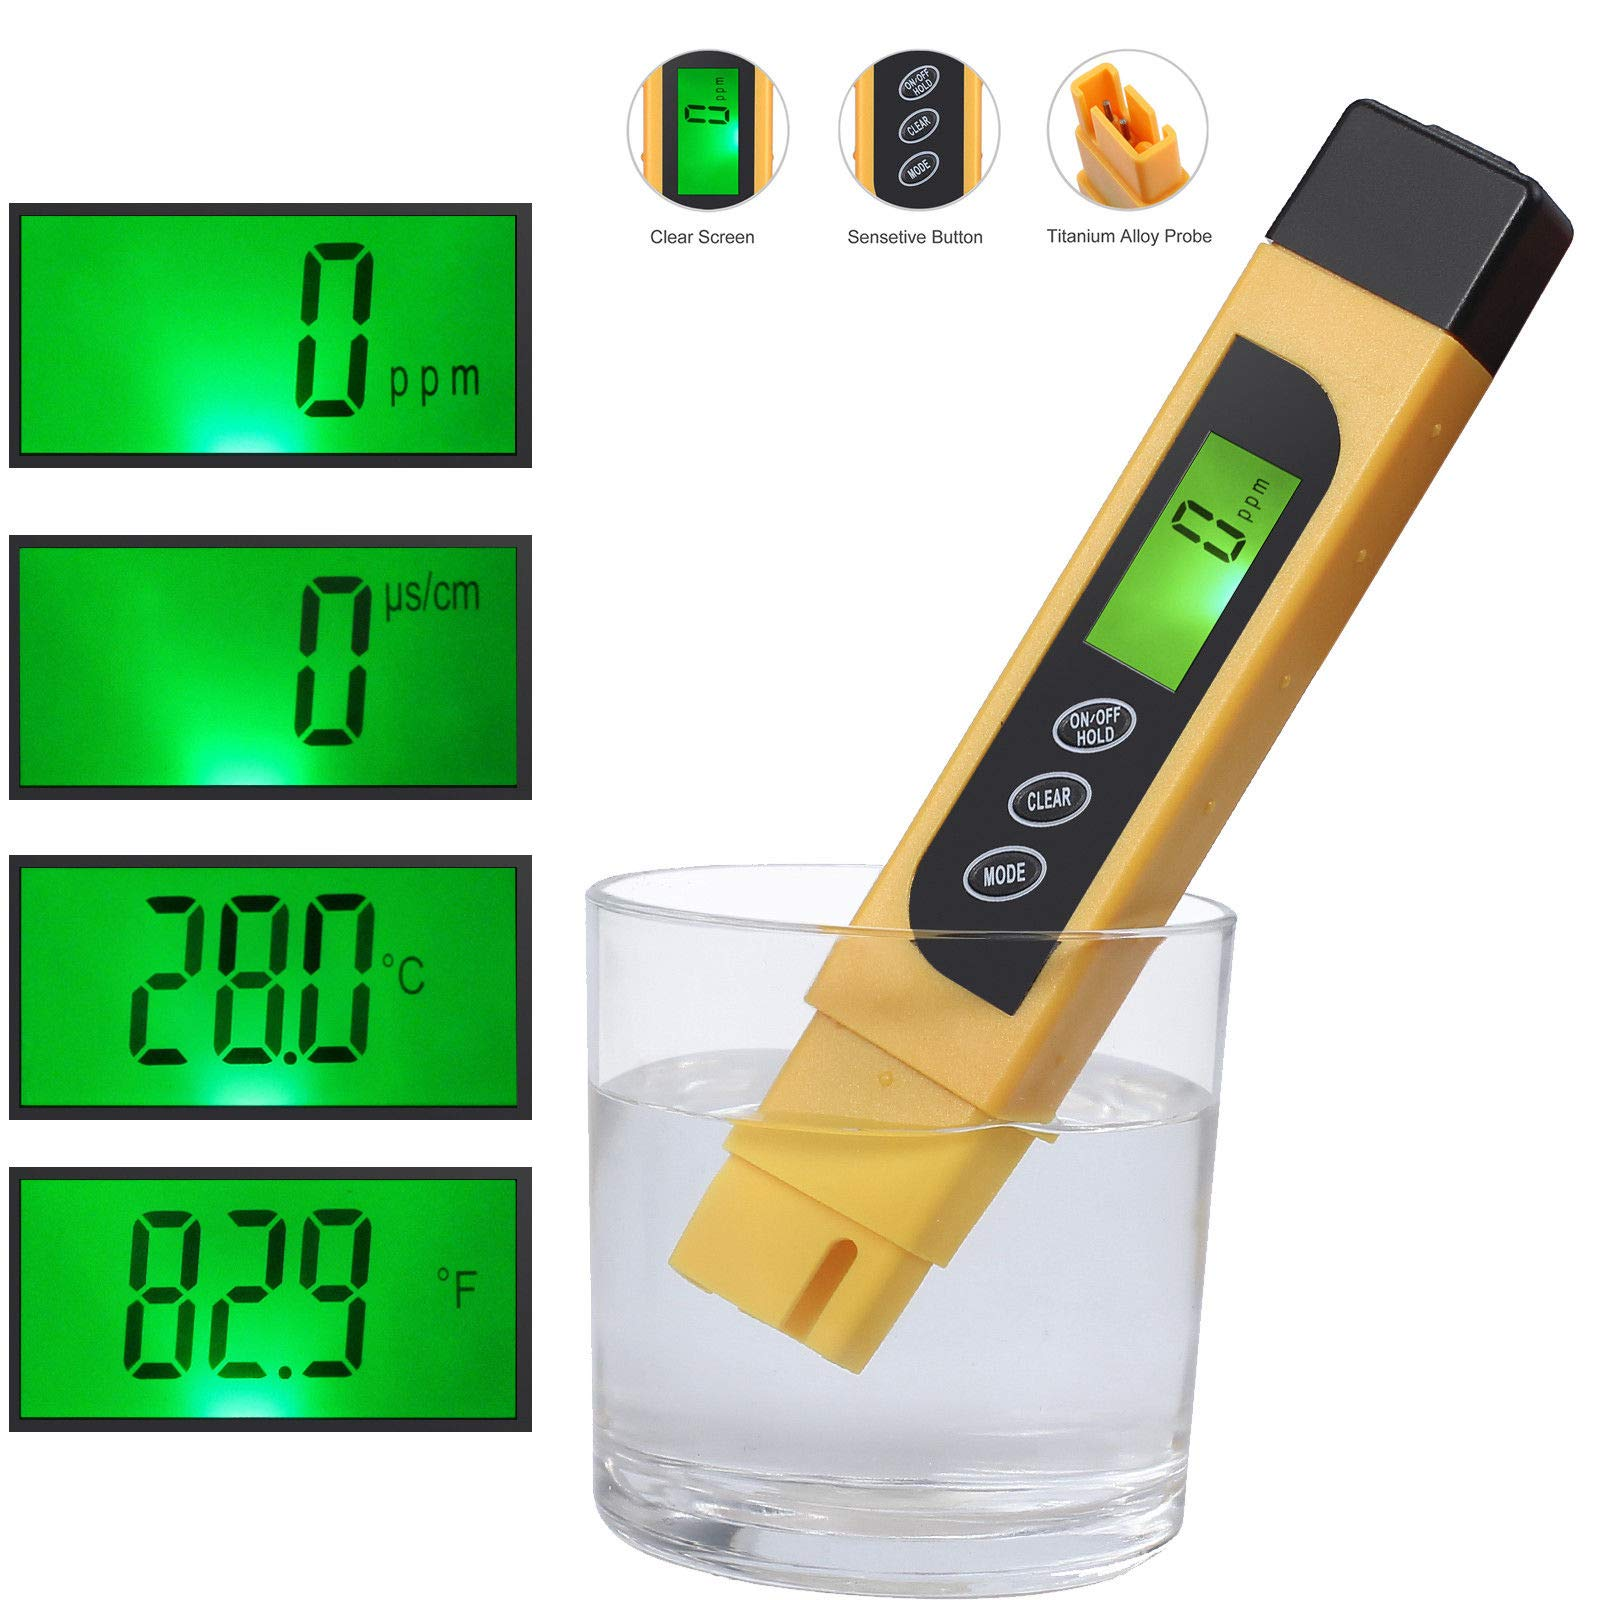 Water Quality Tester, TDS Meter, EC Meter & Temperature Meter 3 in 1, 0-9990ppm, Ideal Water Test Meter Drinking Water, Aquariums, etc. by HT-DD